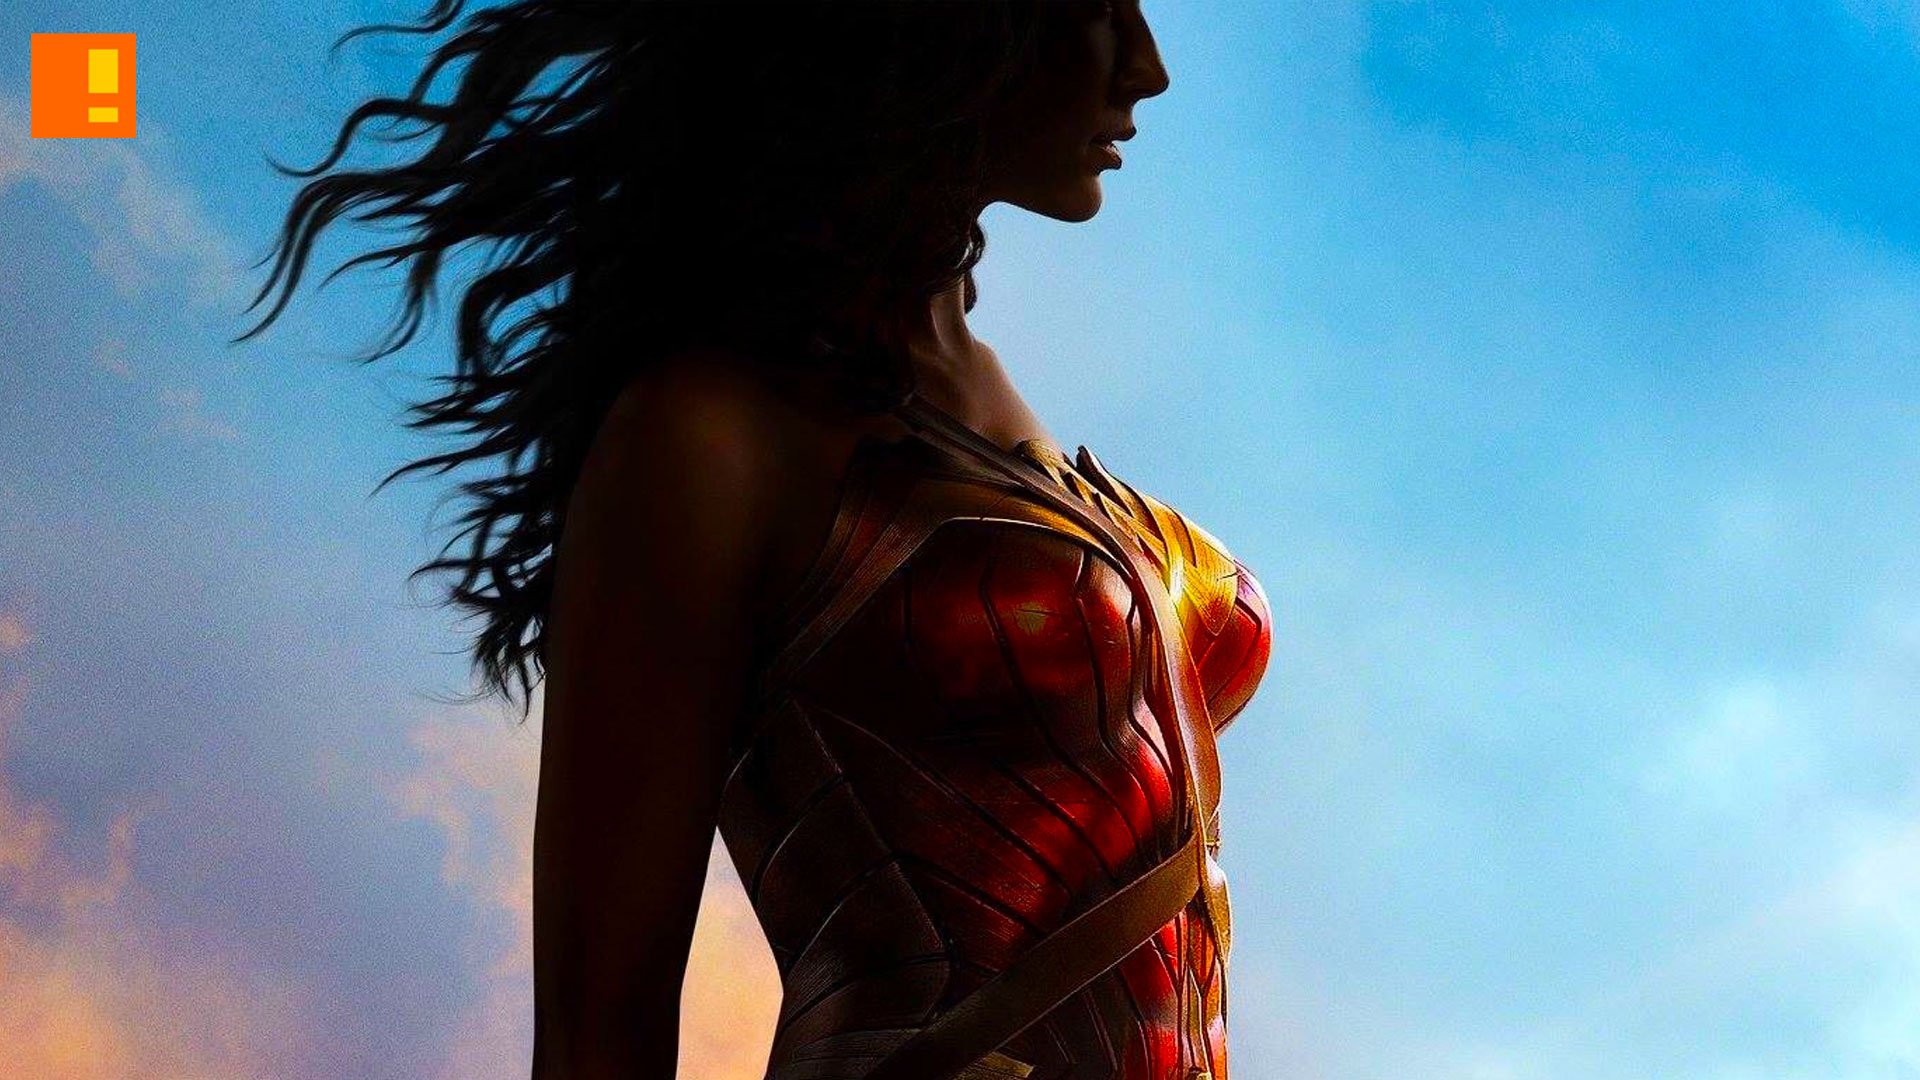 wonder woman, wb pictures, dc comics, pstty jenkins, gal gadot, dc comics, the action pixel, entertainment on tap